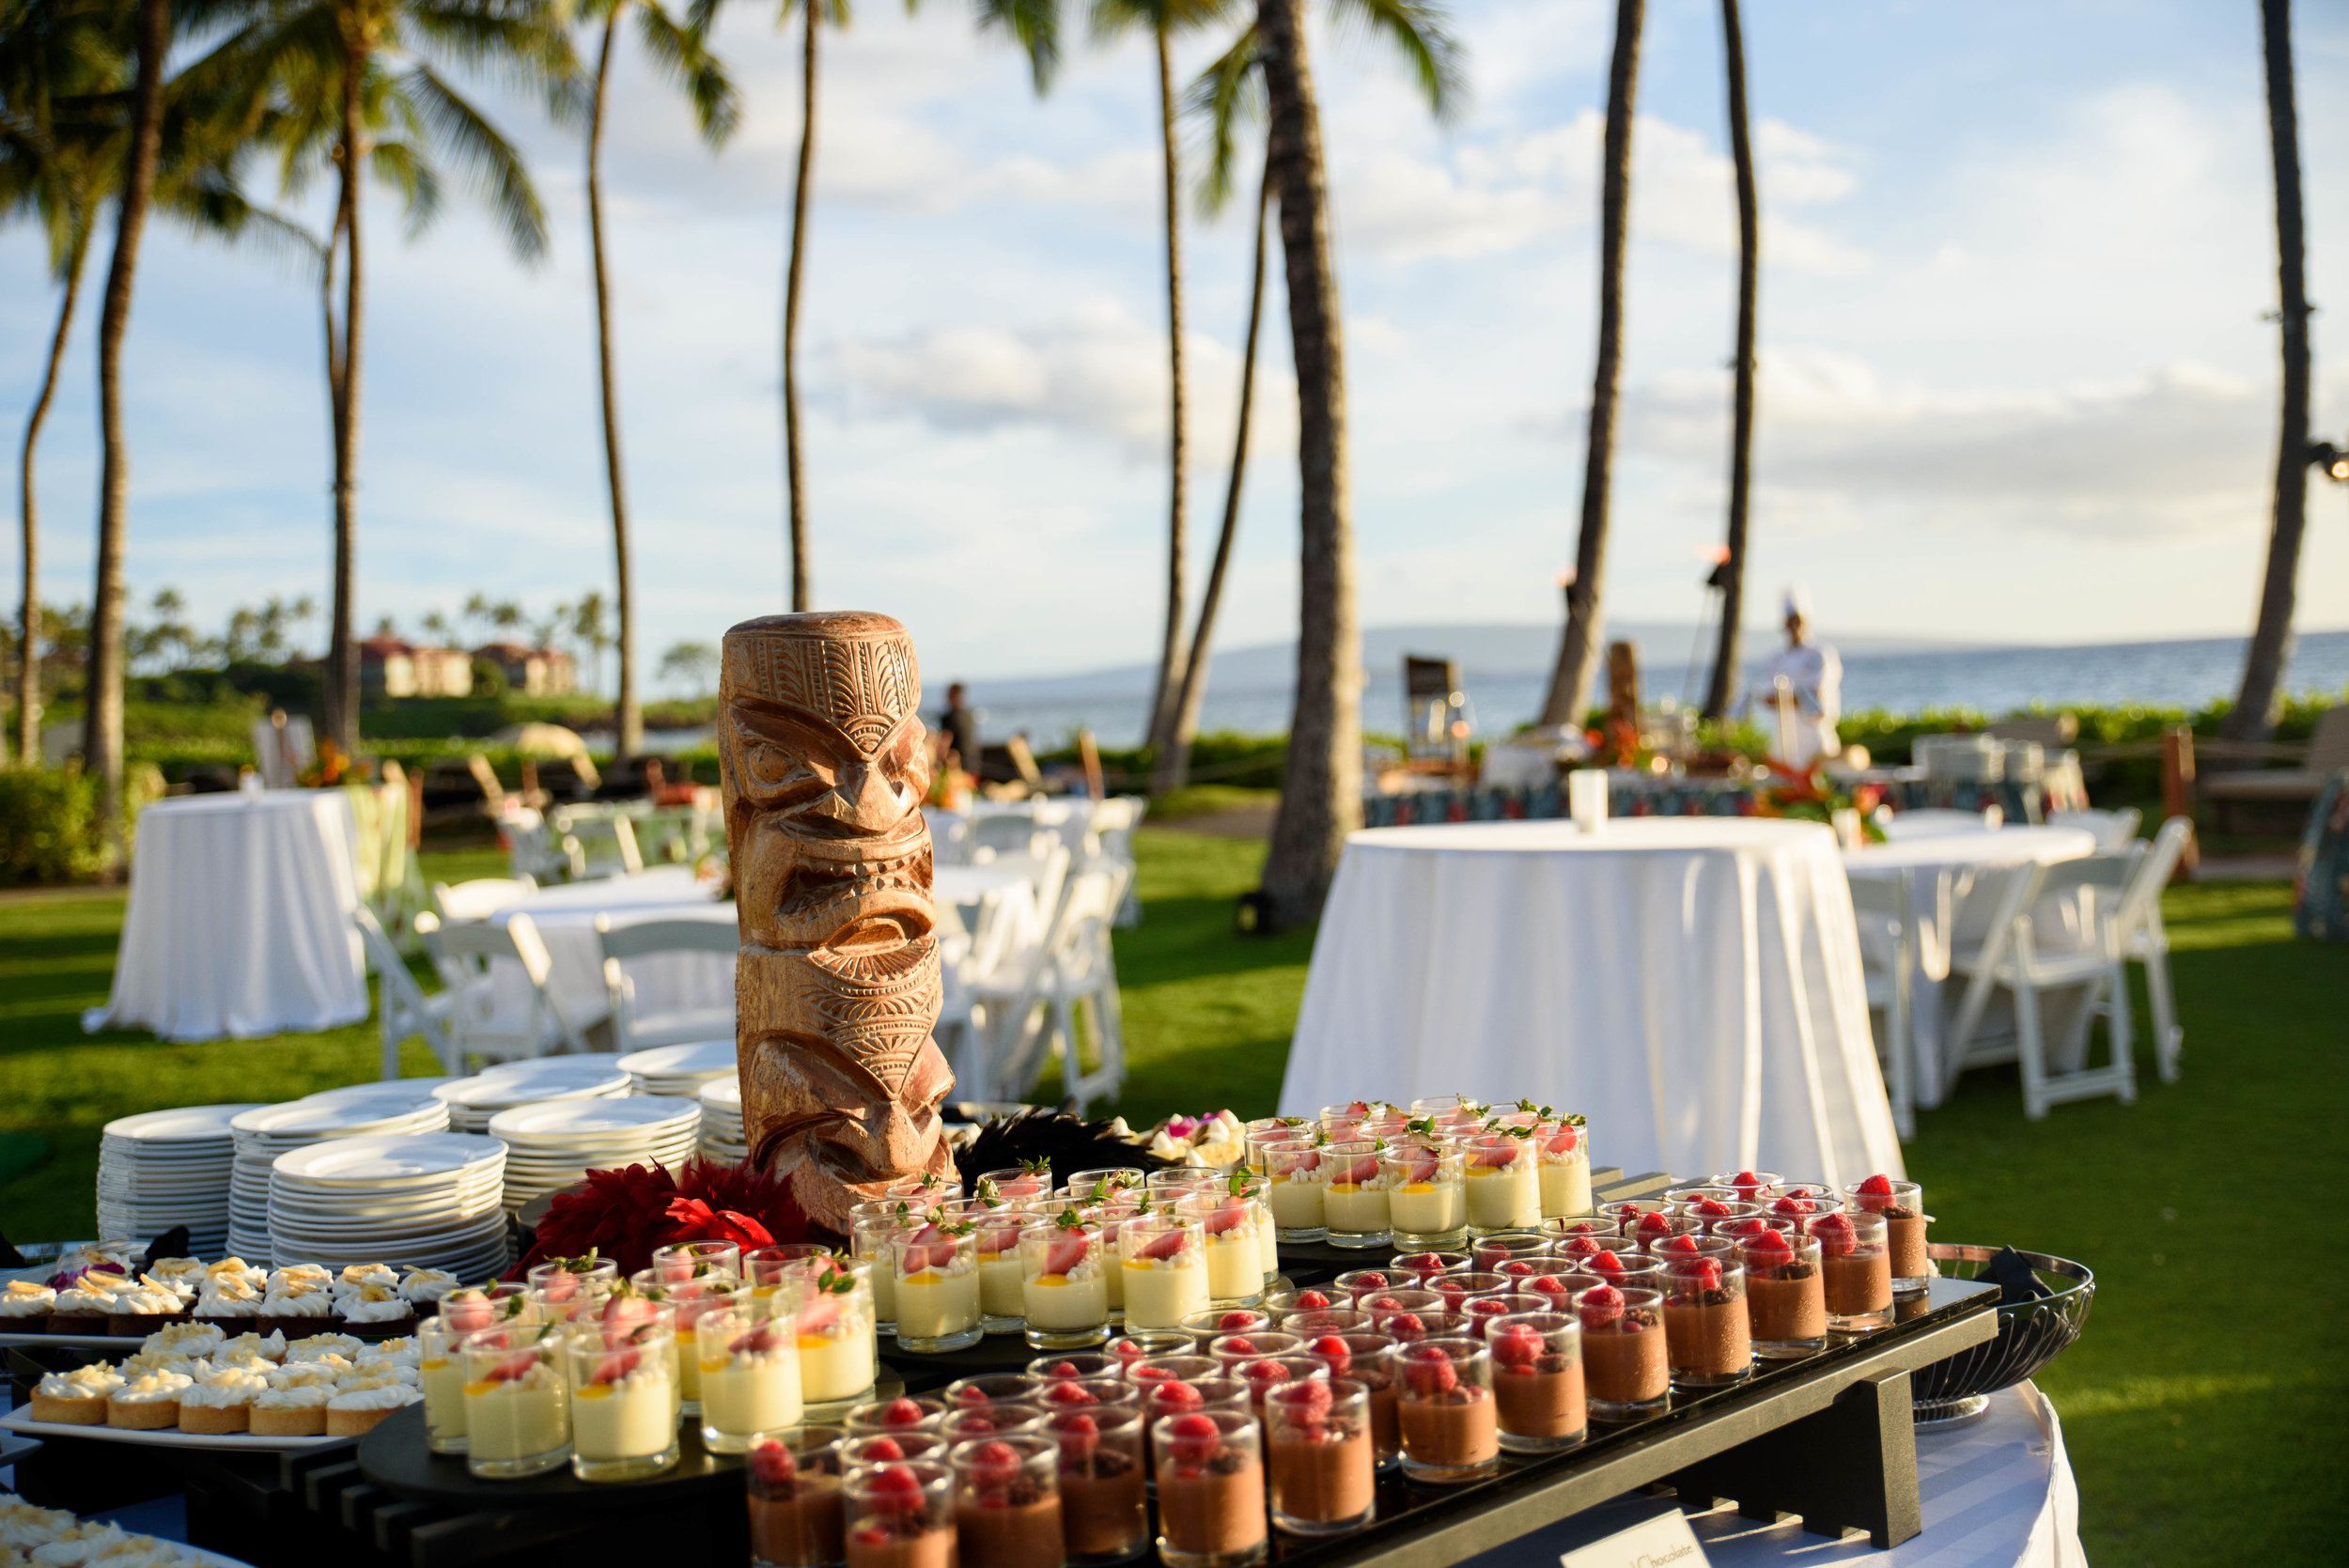 WelcomeReception64_KelliPricePhotography_TopPerformersGrandWaileaHI_May2017 copy.jpg